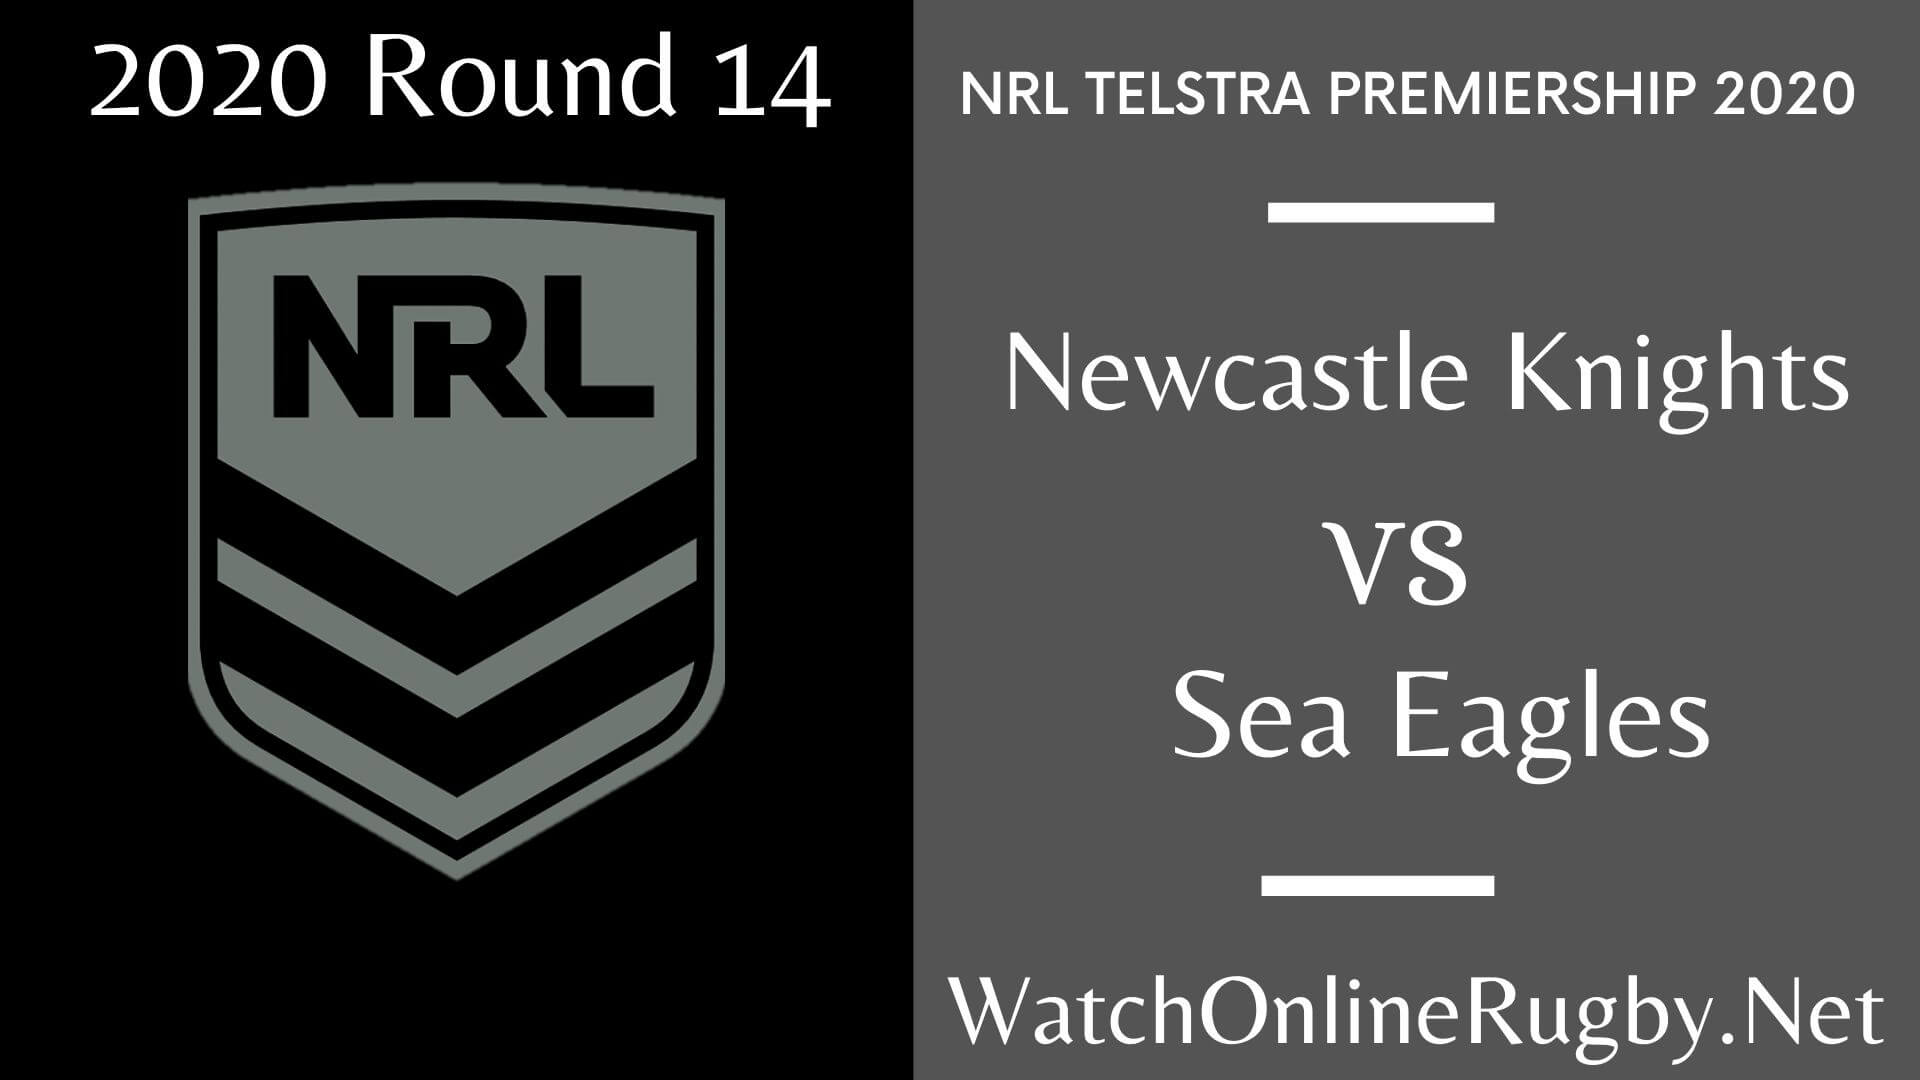 Newcastle Knights Vs Sea Eagles Highlights 2020 Round 14 NRL Rugby